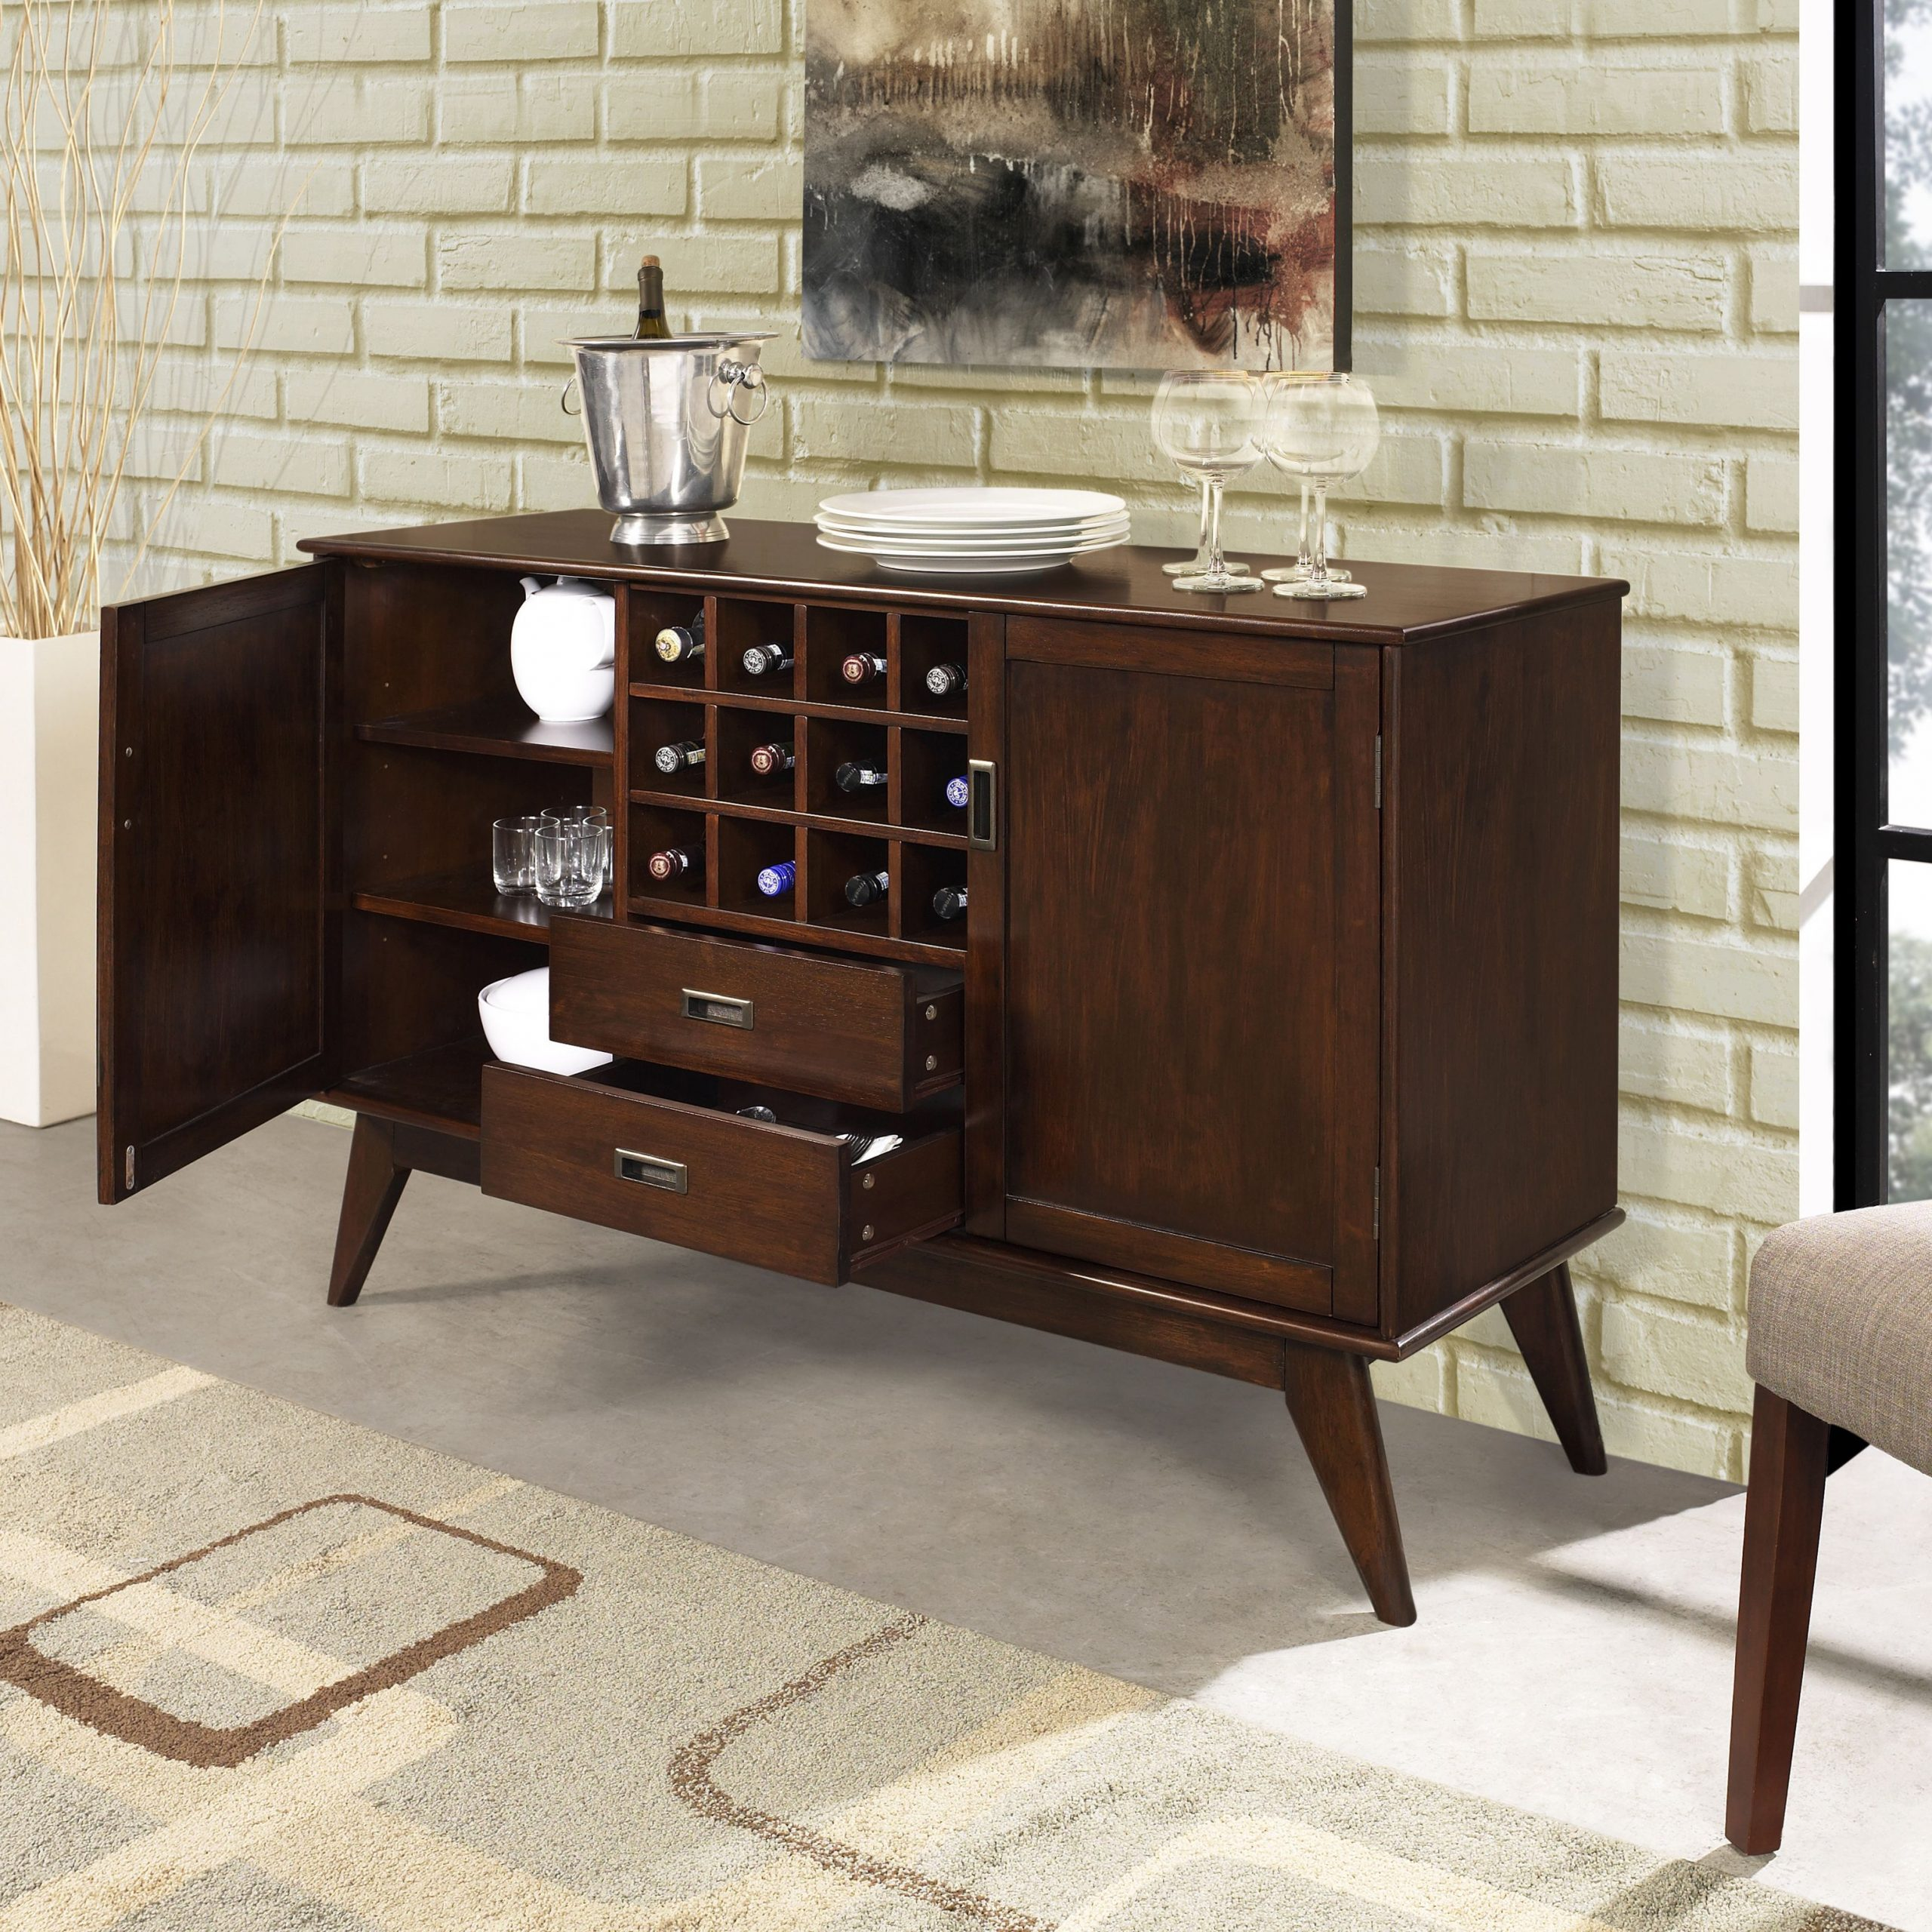 """Wyndenhall Tierney Solid Hardwood 54 Inch Wide Mid Century Throughout Popular Brentley 54"""" Wide 1 Drawer Sideboards (View 13 of 20)"""